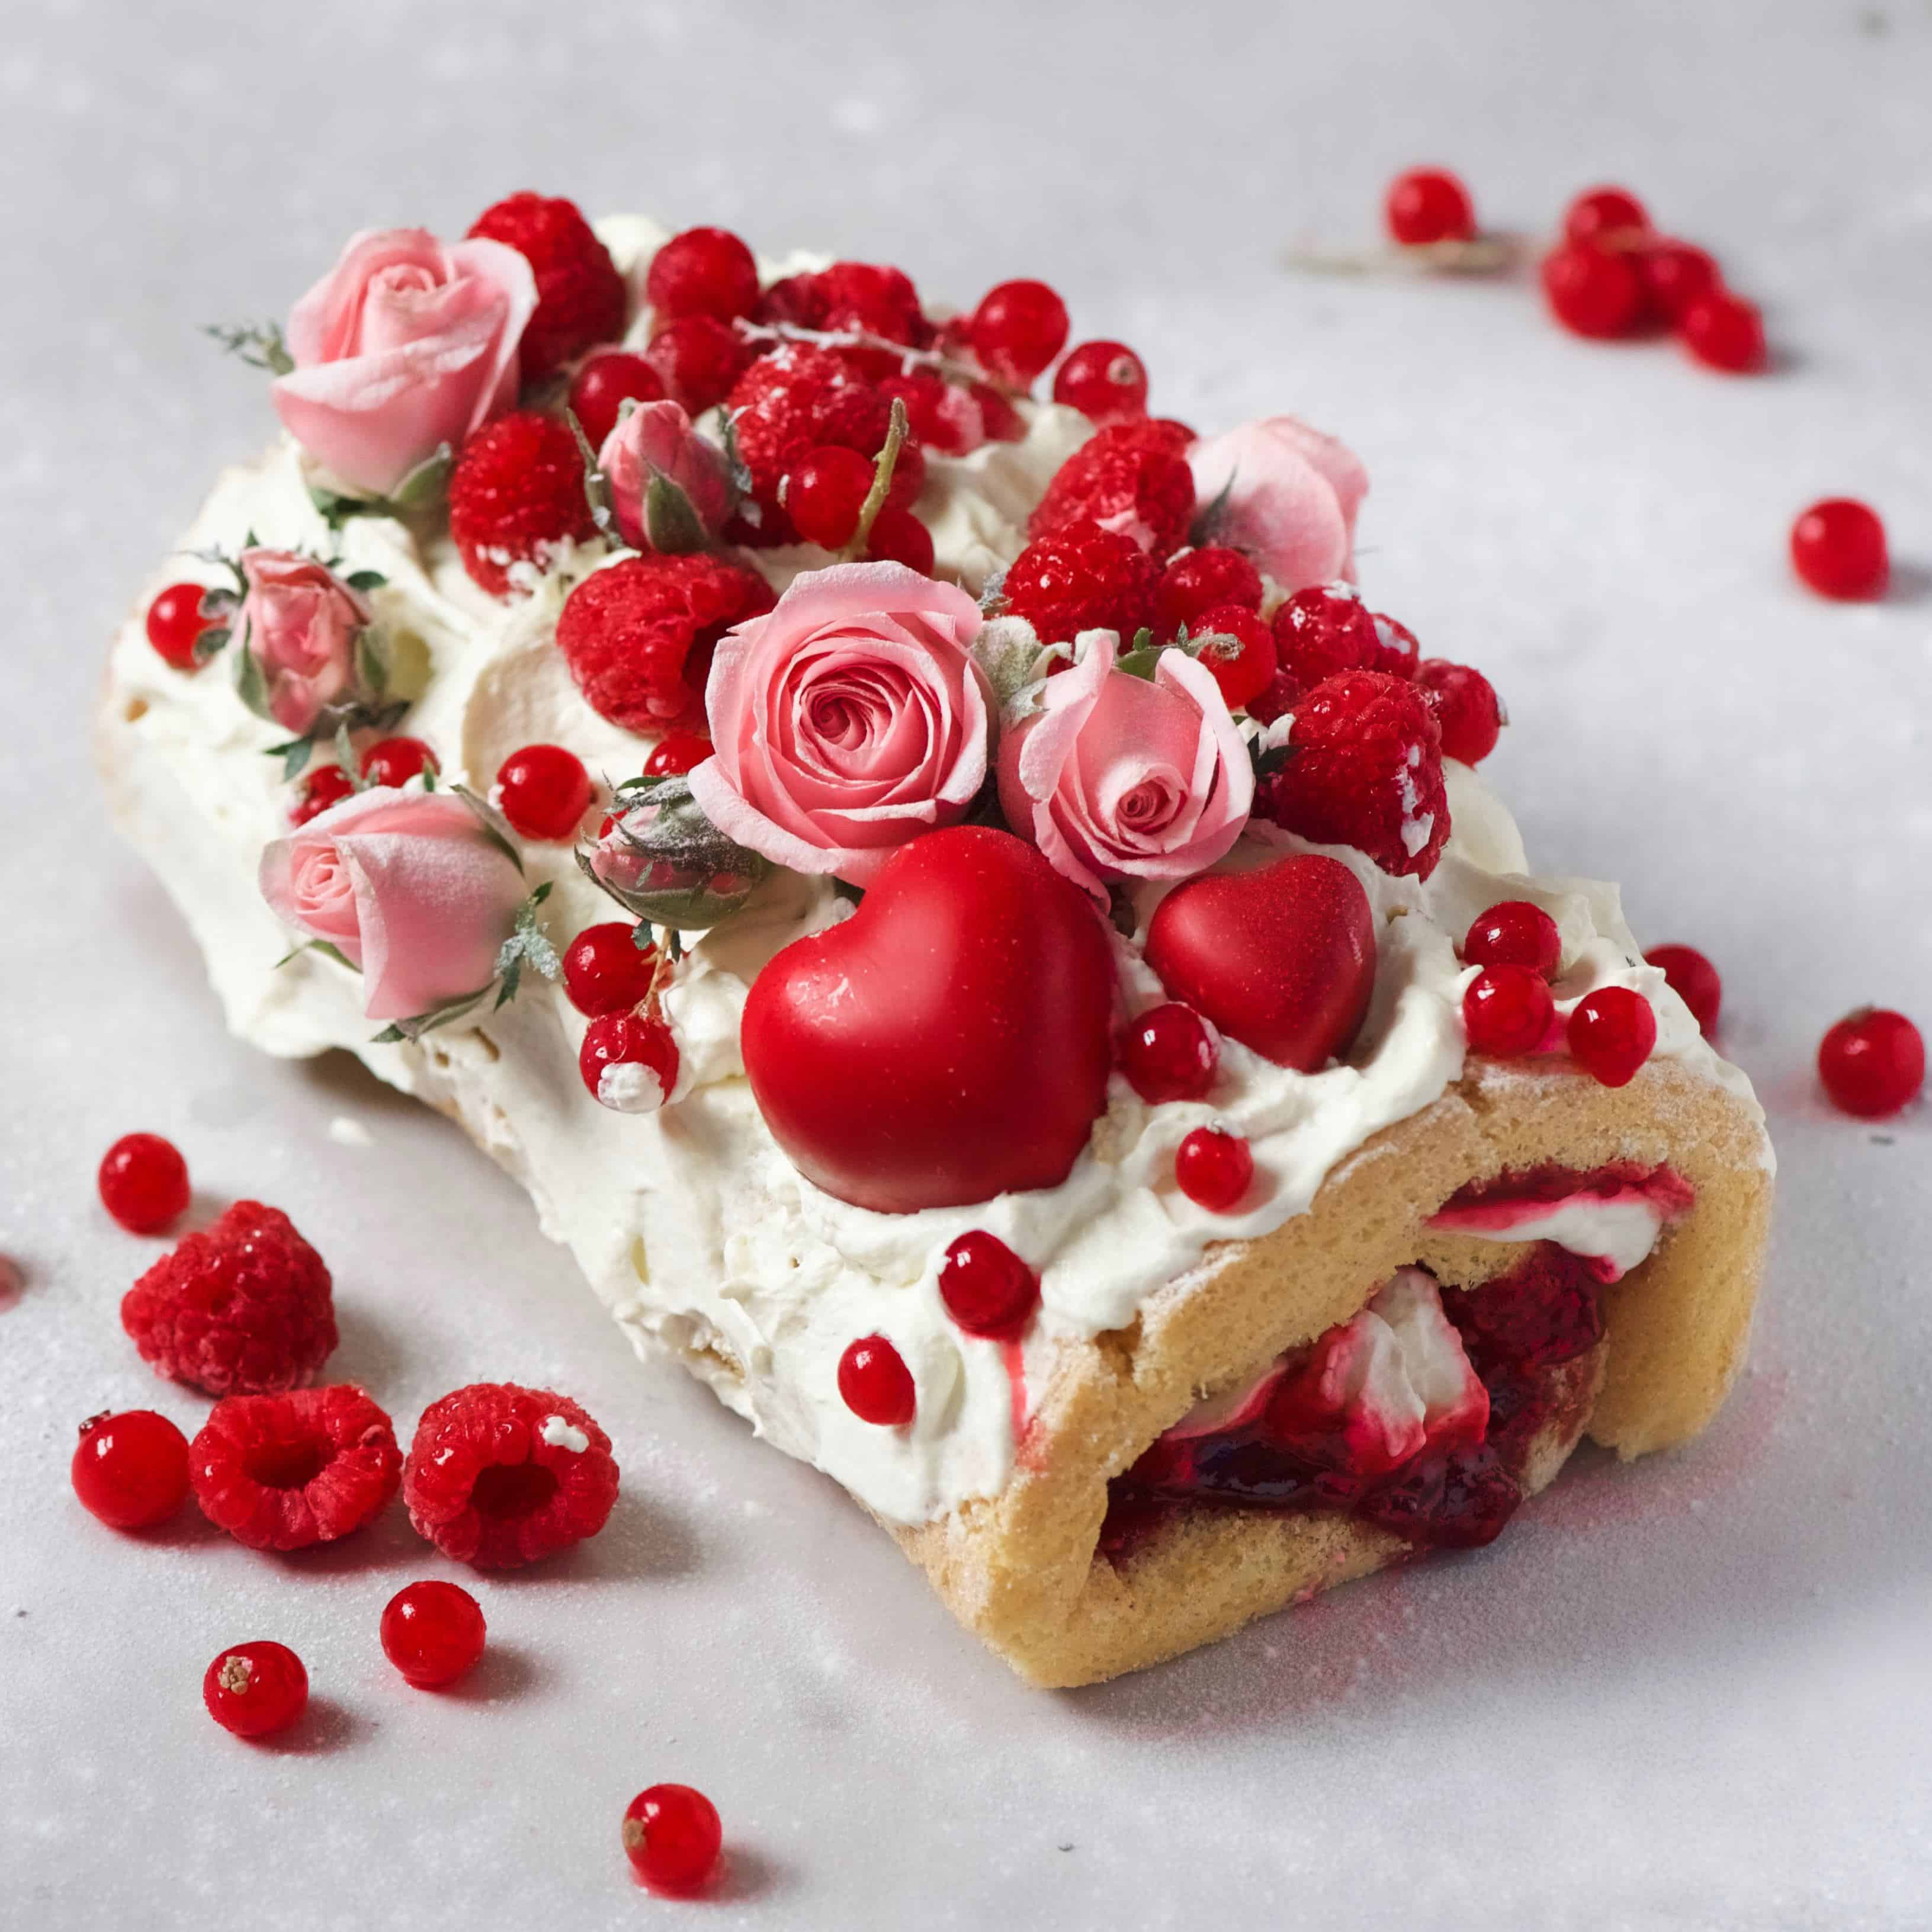 rasberry and lemon swiss roll with coconut cream